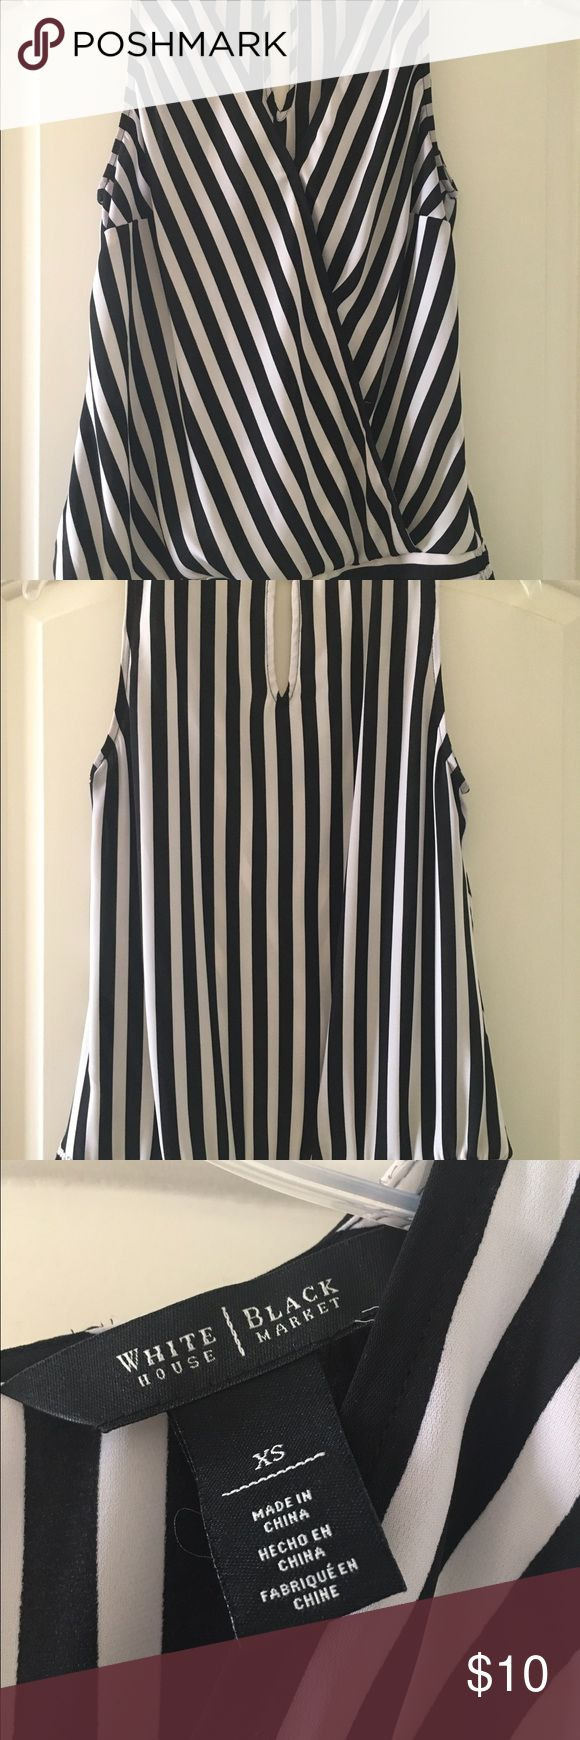 Black and White Striped Tank Top Black and white striped tank top from White House Black Market. Elastic waist on the bottom with two snaps in the front. White House Black Market Tops Tank Tops